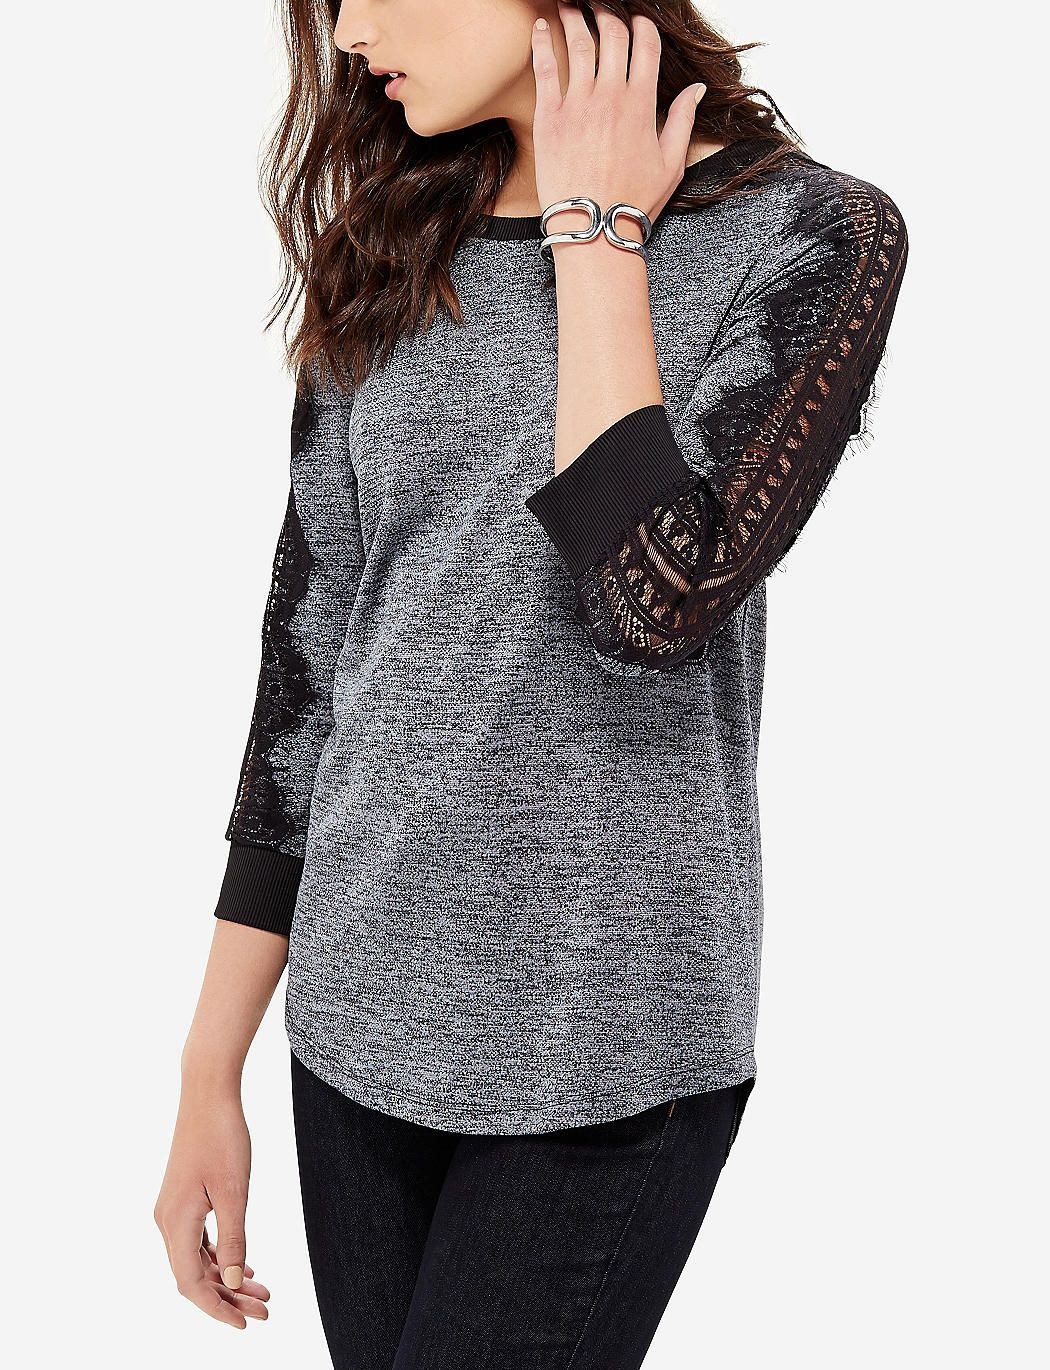 Clothes for Women | Women's Apparel | New Arrivals | THE LIMITED